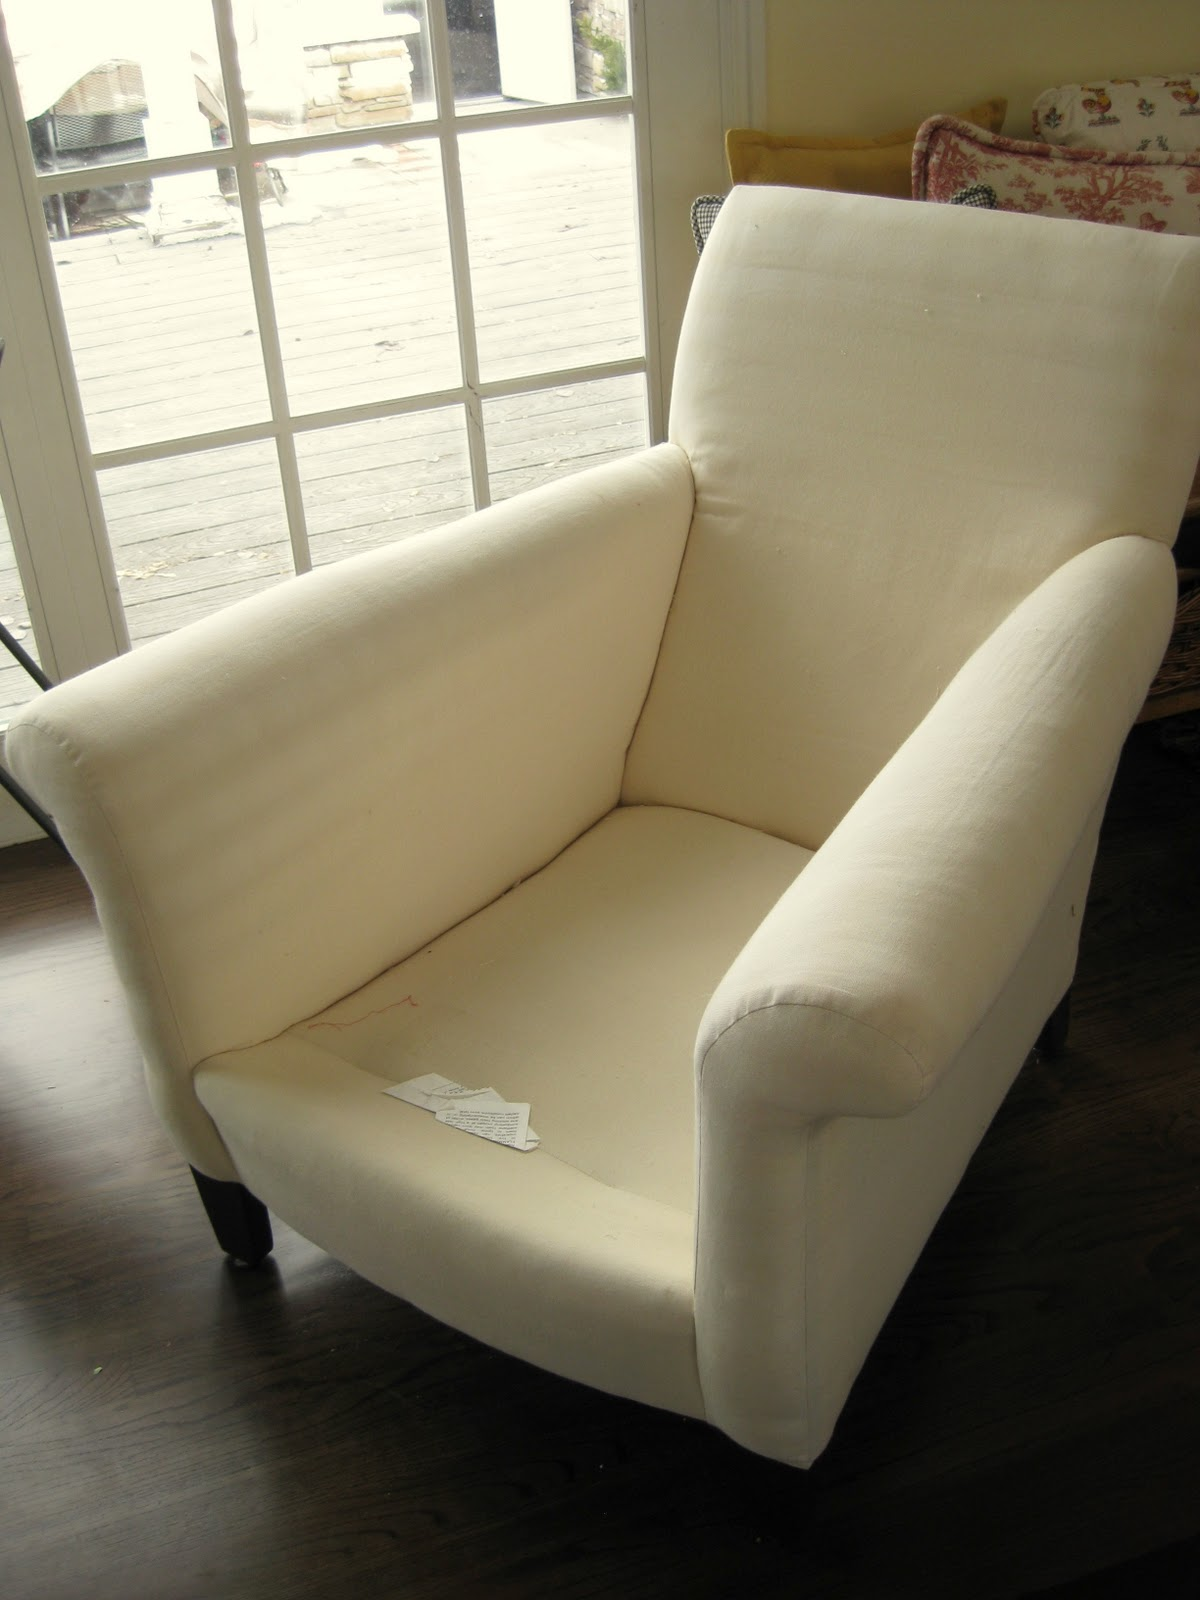 White Slipcover Chair And Ottoman Dining Table 6 Chairs Cheap Custom Slipcovers By Shelley Floral